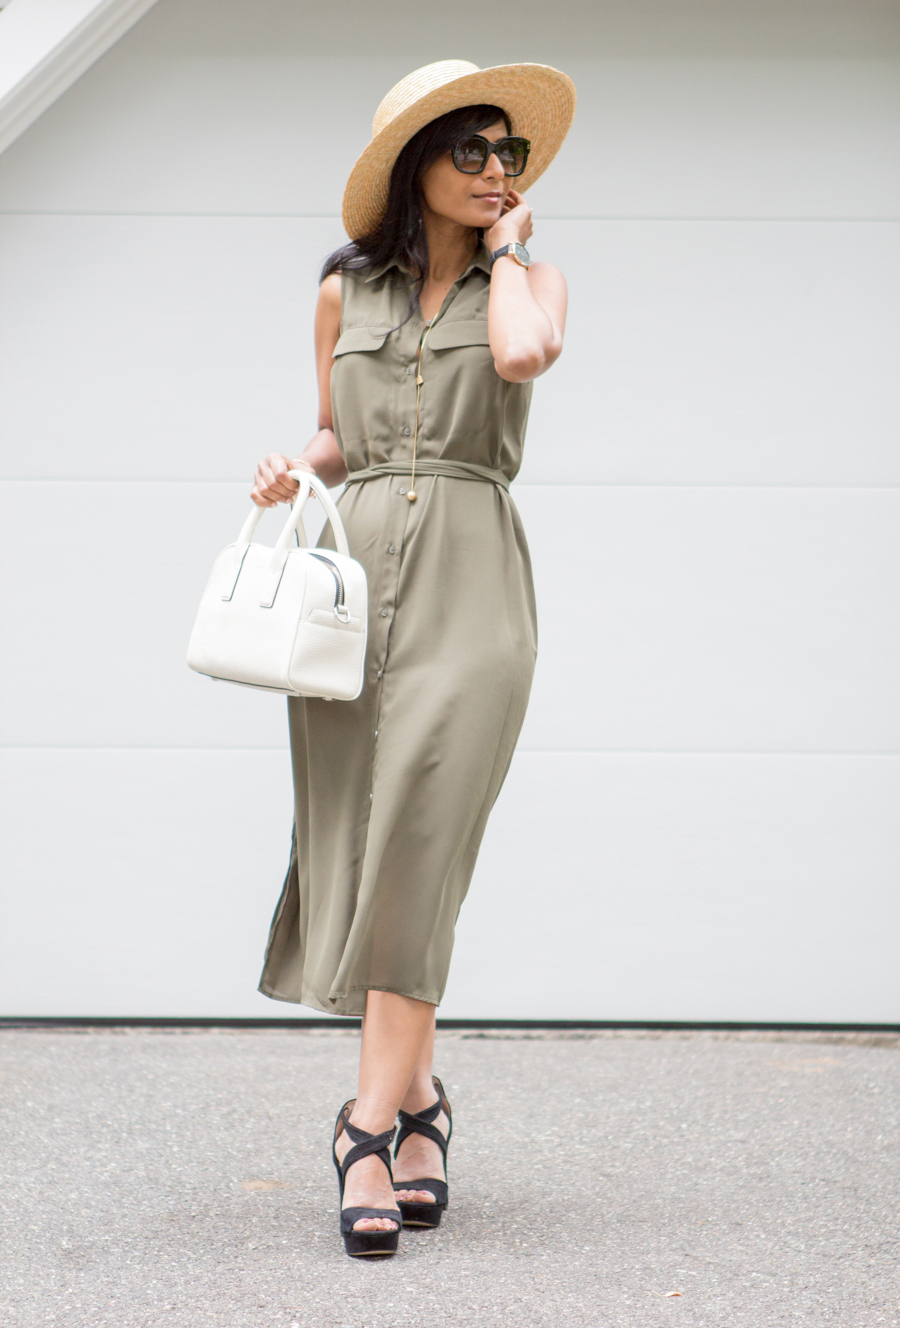 targetstyle, target clothes, budget style, summer style, personal styling, better wardrobe, petite fashion, personal stylist, marc jacobs, boater hat, summer dress, casual outfit, summer layer, sleeveless vest, work style